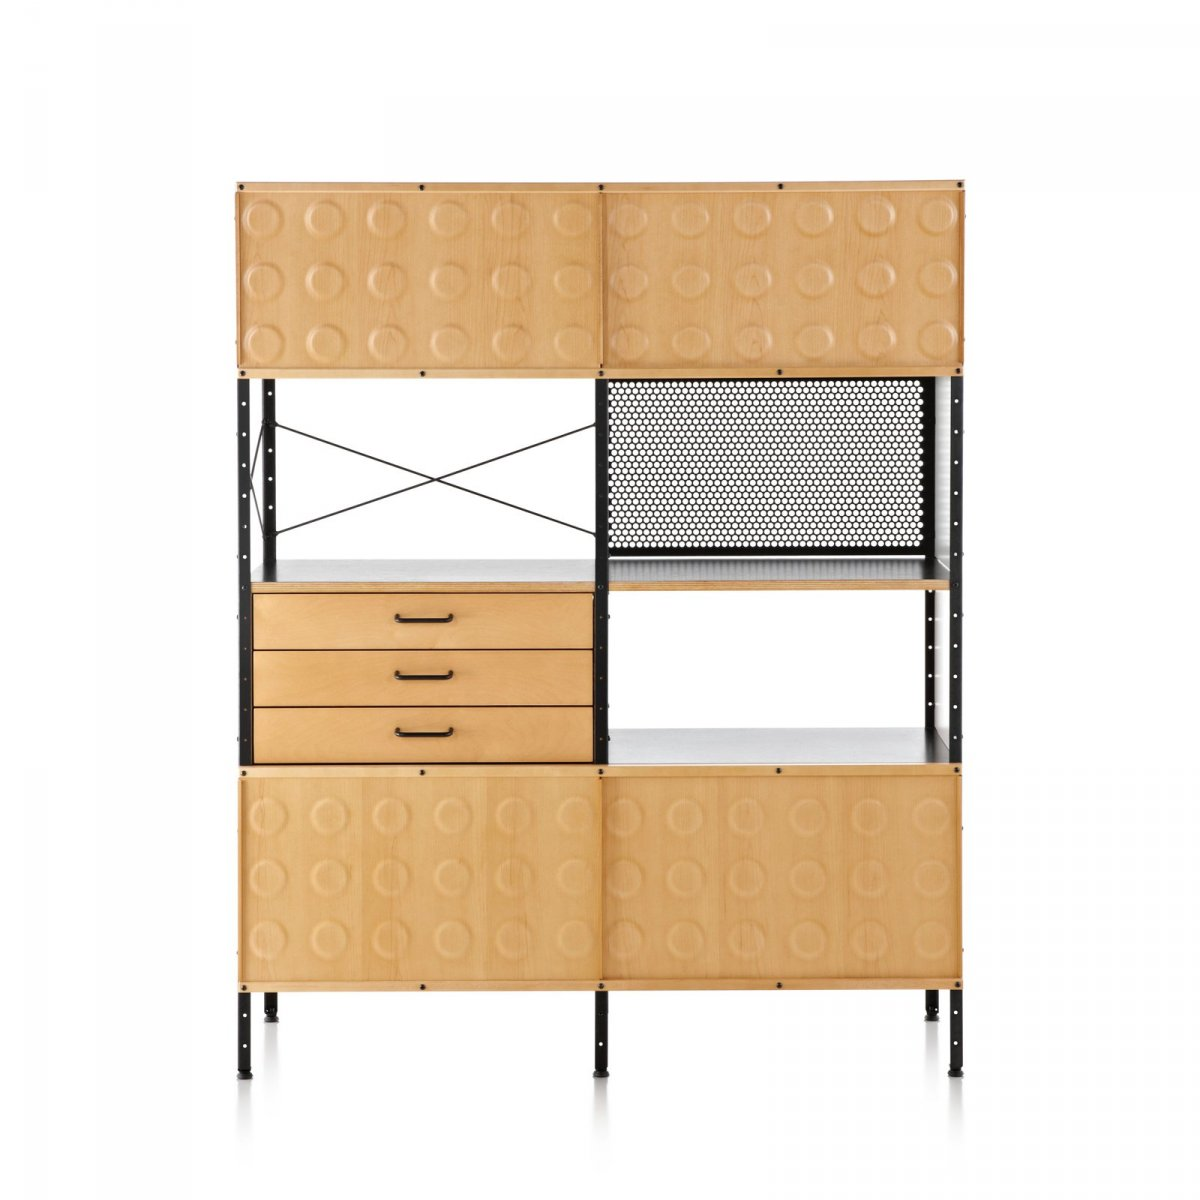 eames storage unit 4 215 2 by charles ray eames for 14679 | eames storage unit 4 x 2 19 14679